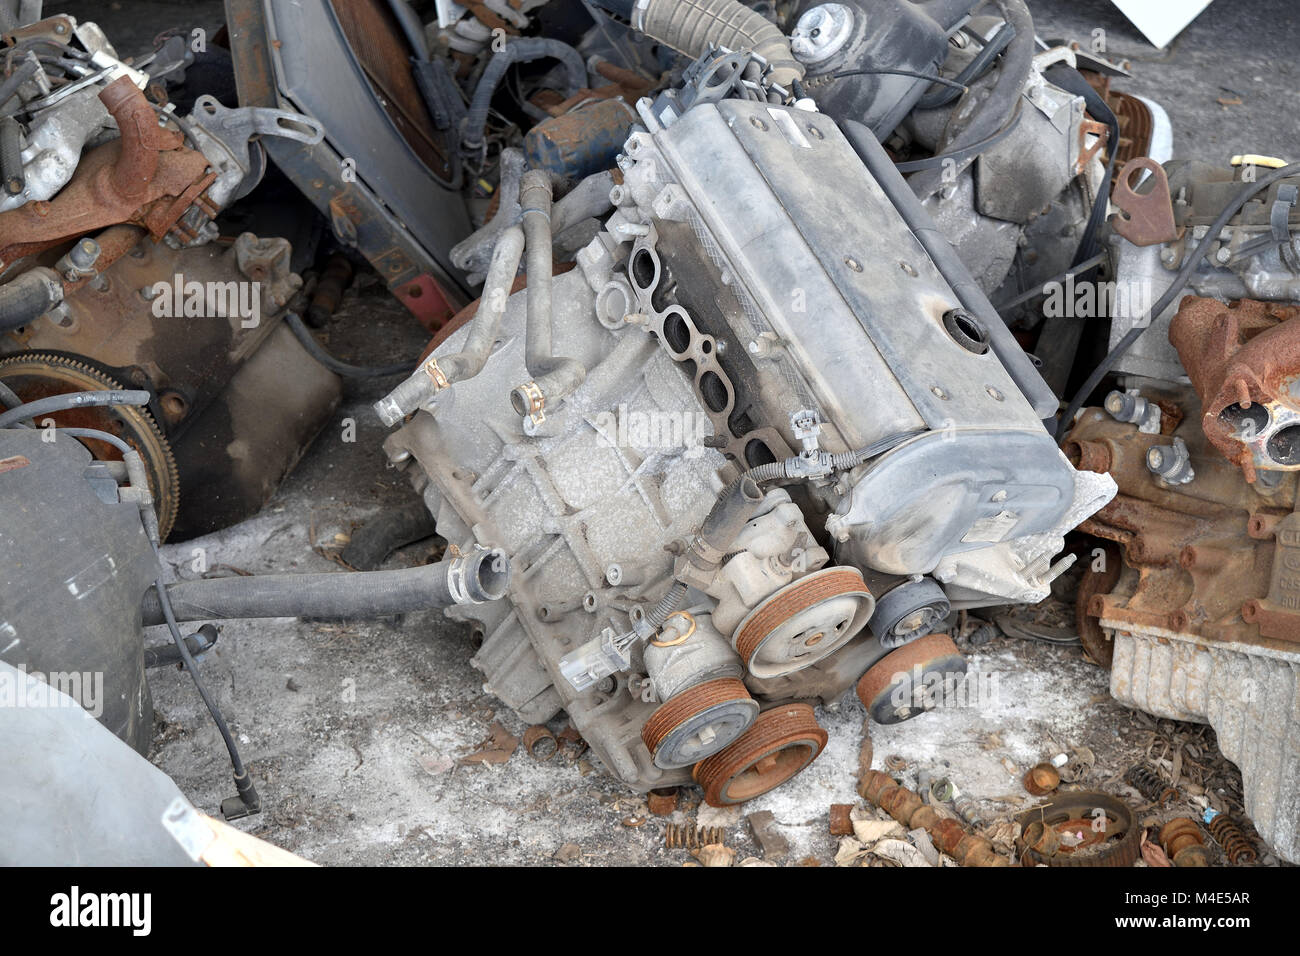 Old rusted engine ready for dismantling process - Stock Image